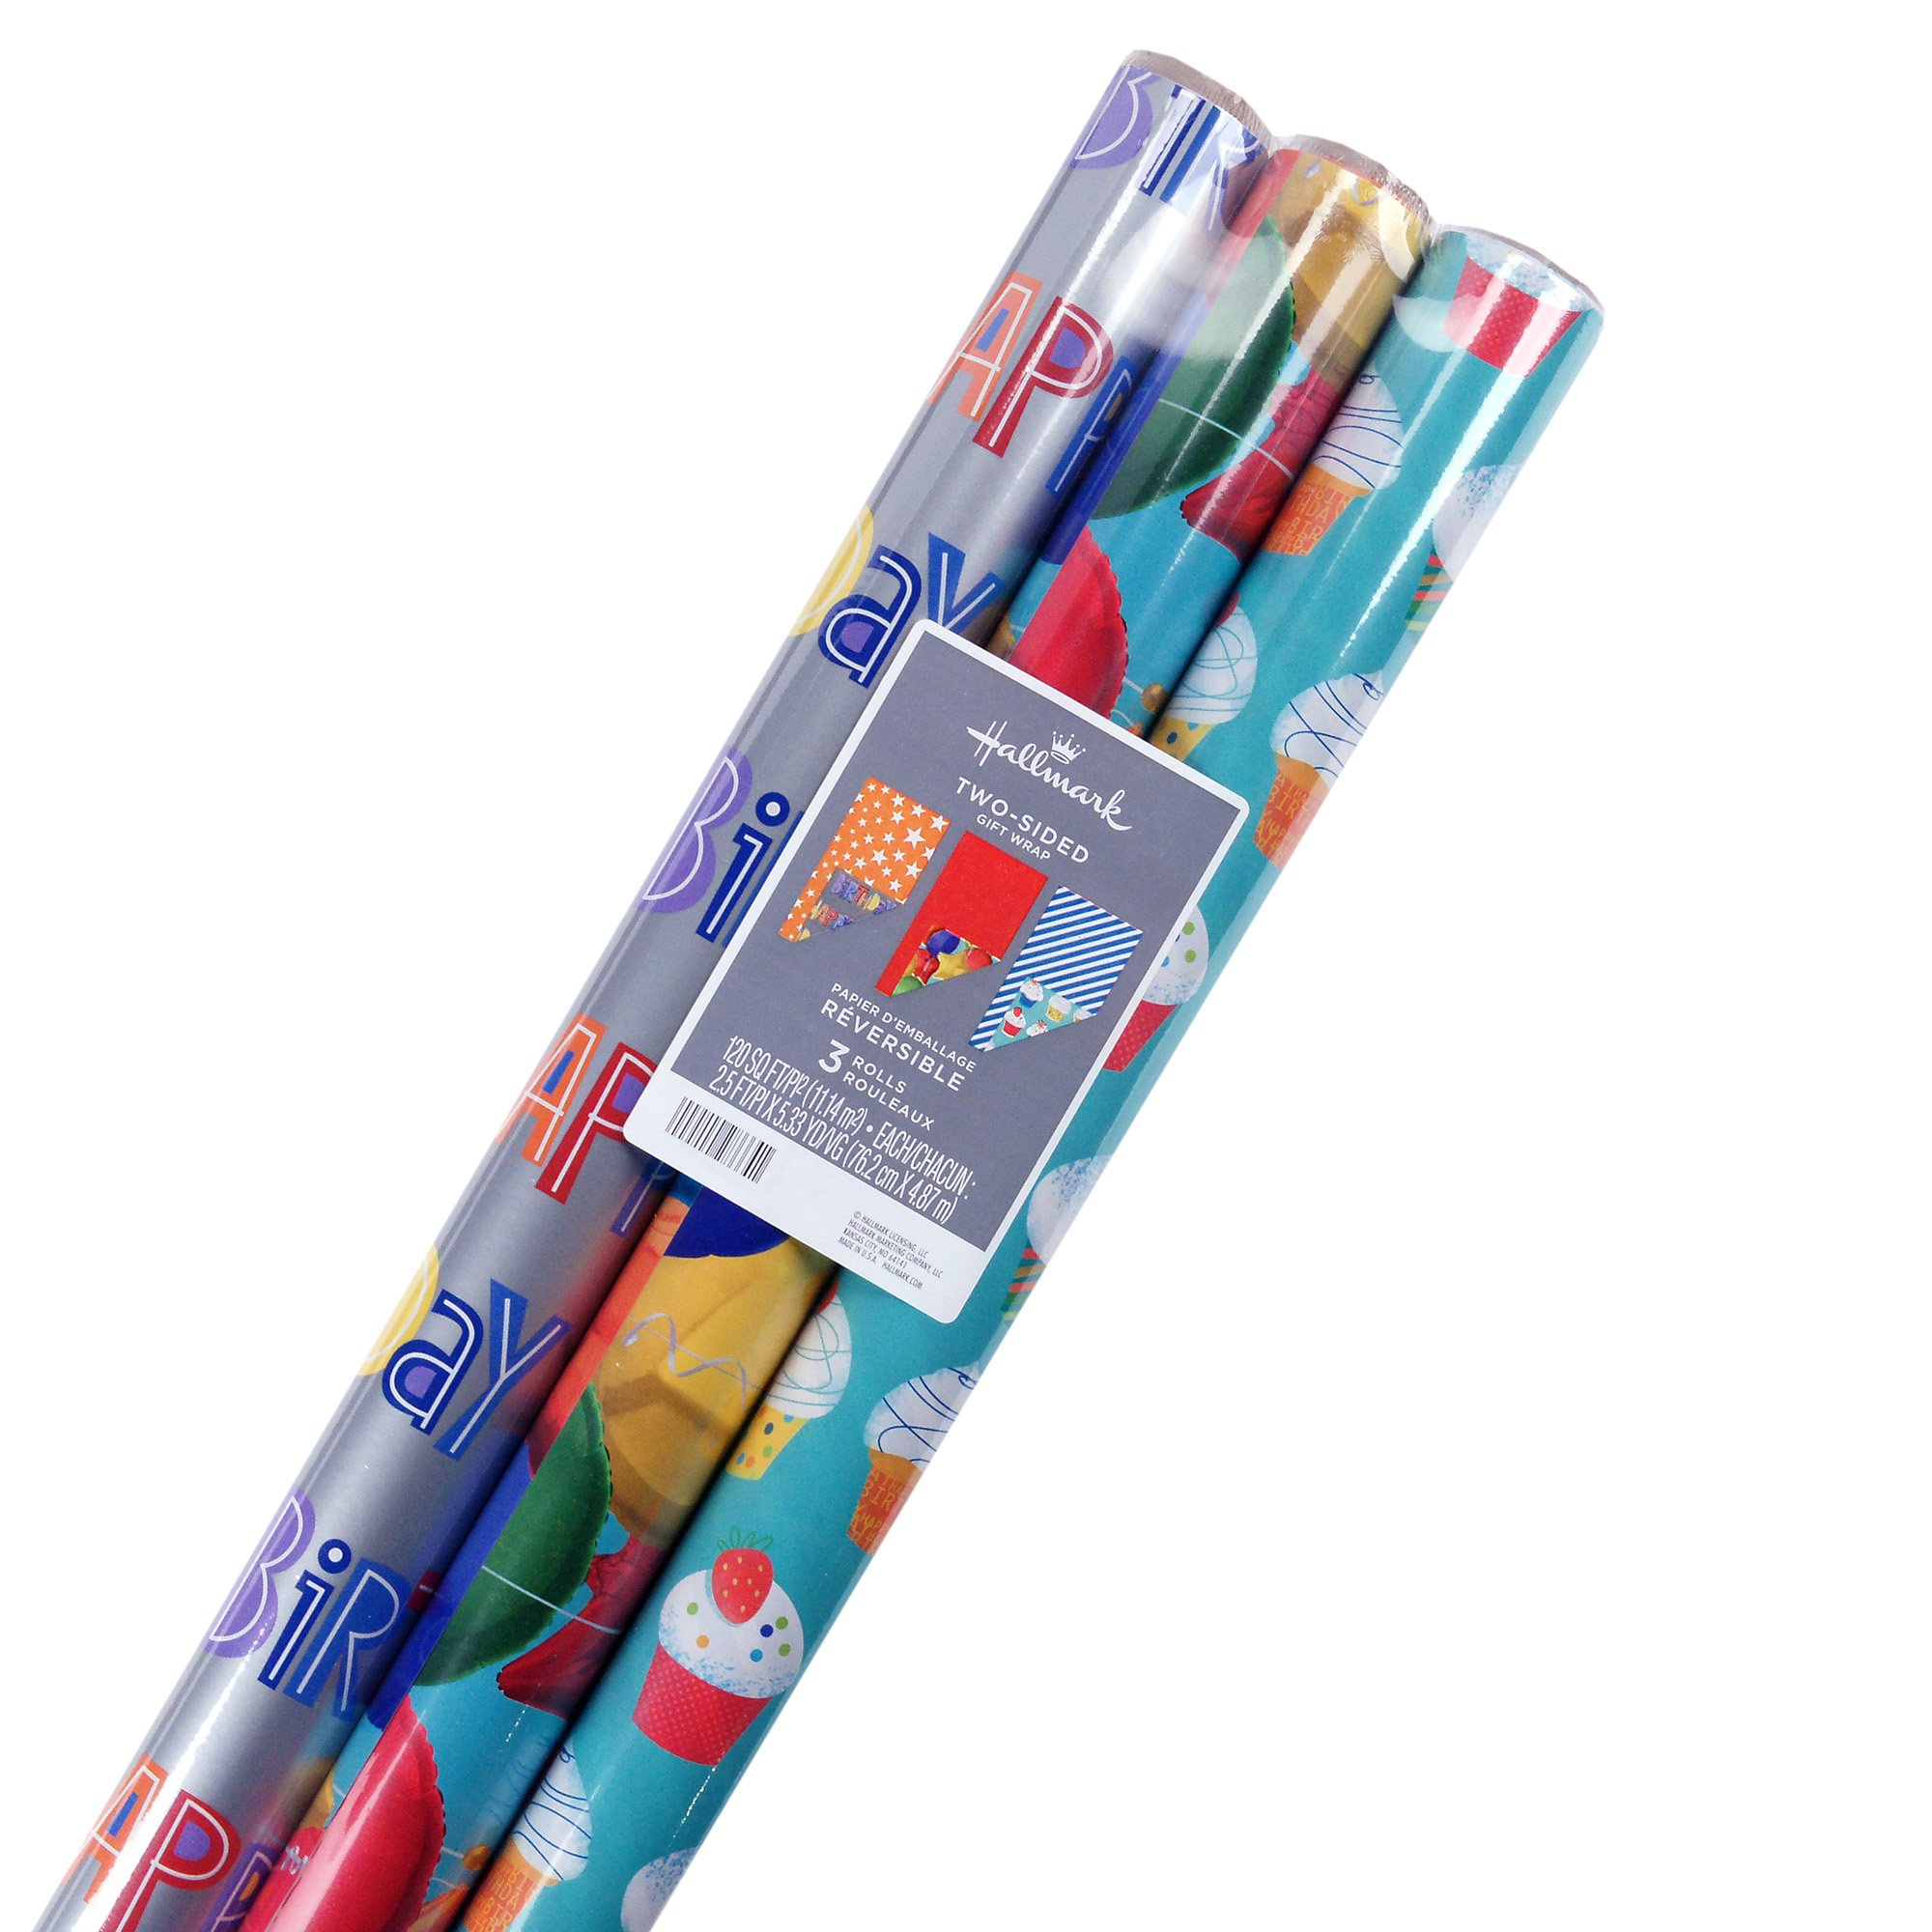 Hallmark 5EWR6215 Wrapping Paper, 120 sq. ft, Celebrate by Hallmark